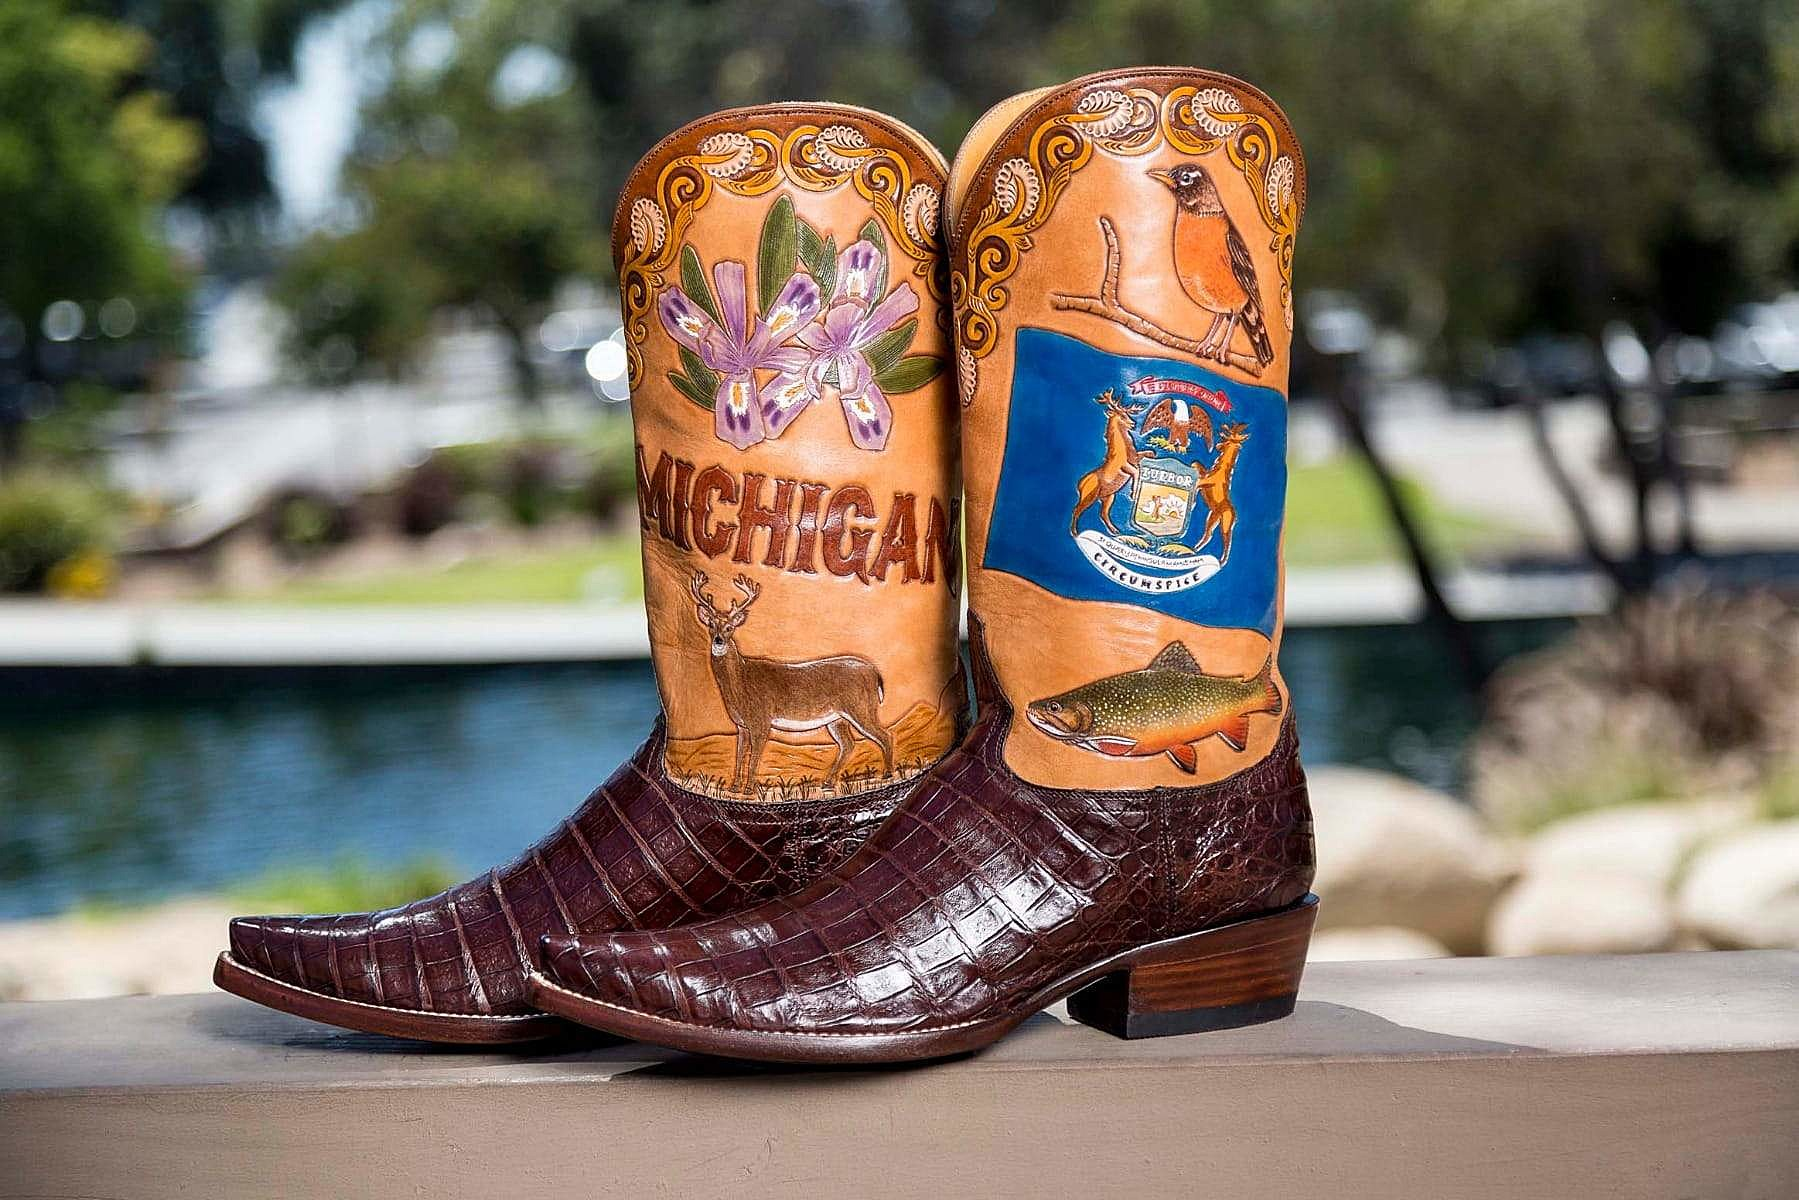 These cowboy boots are voted the best